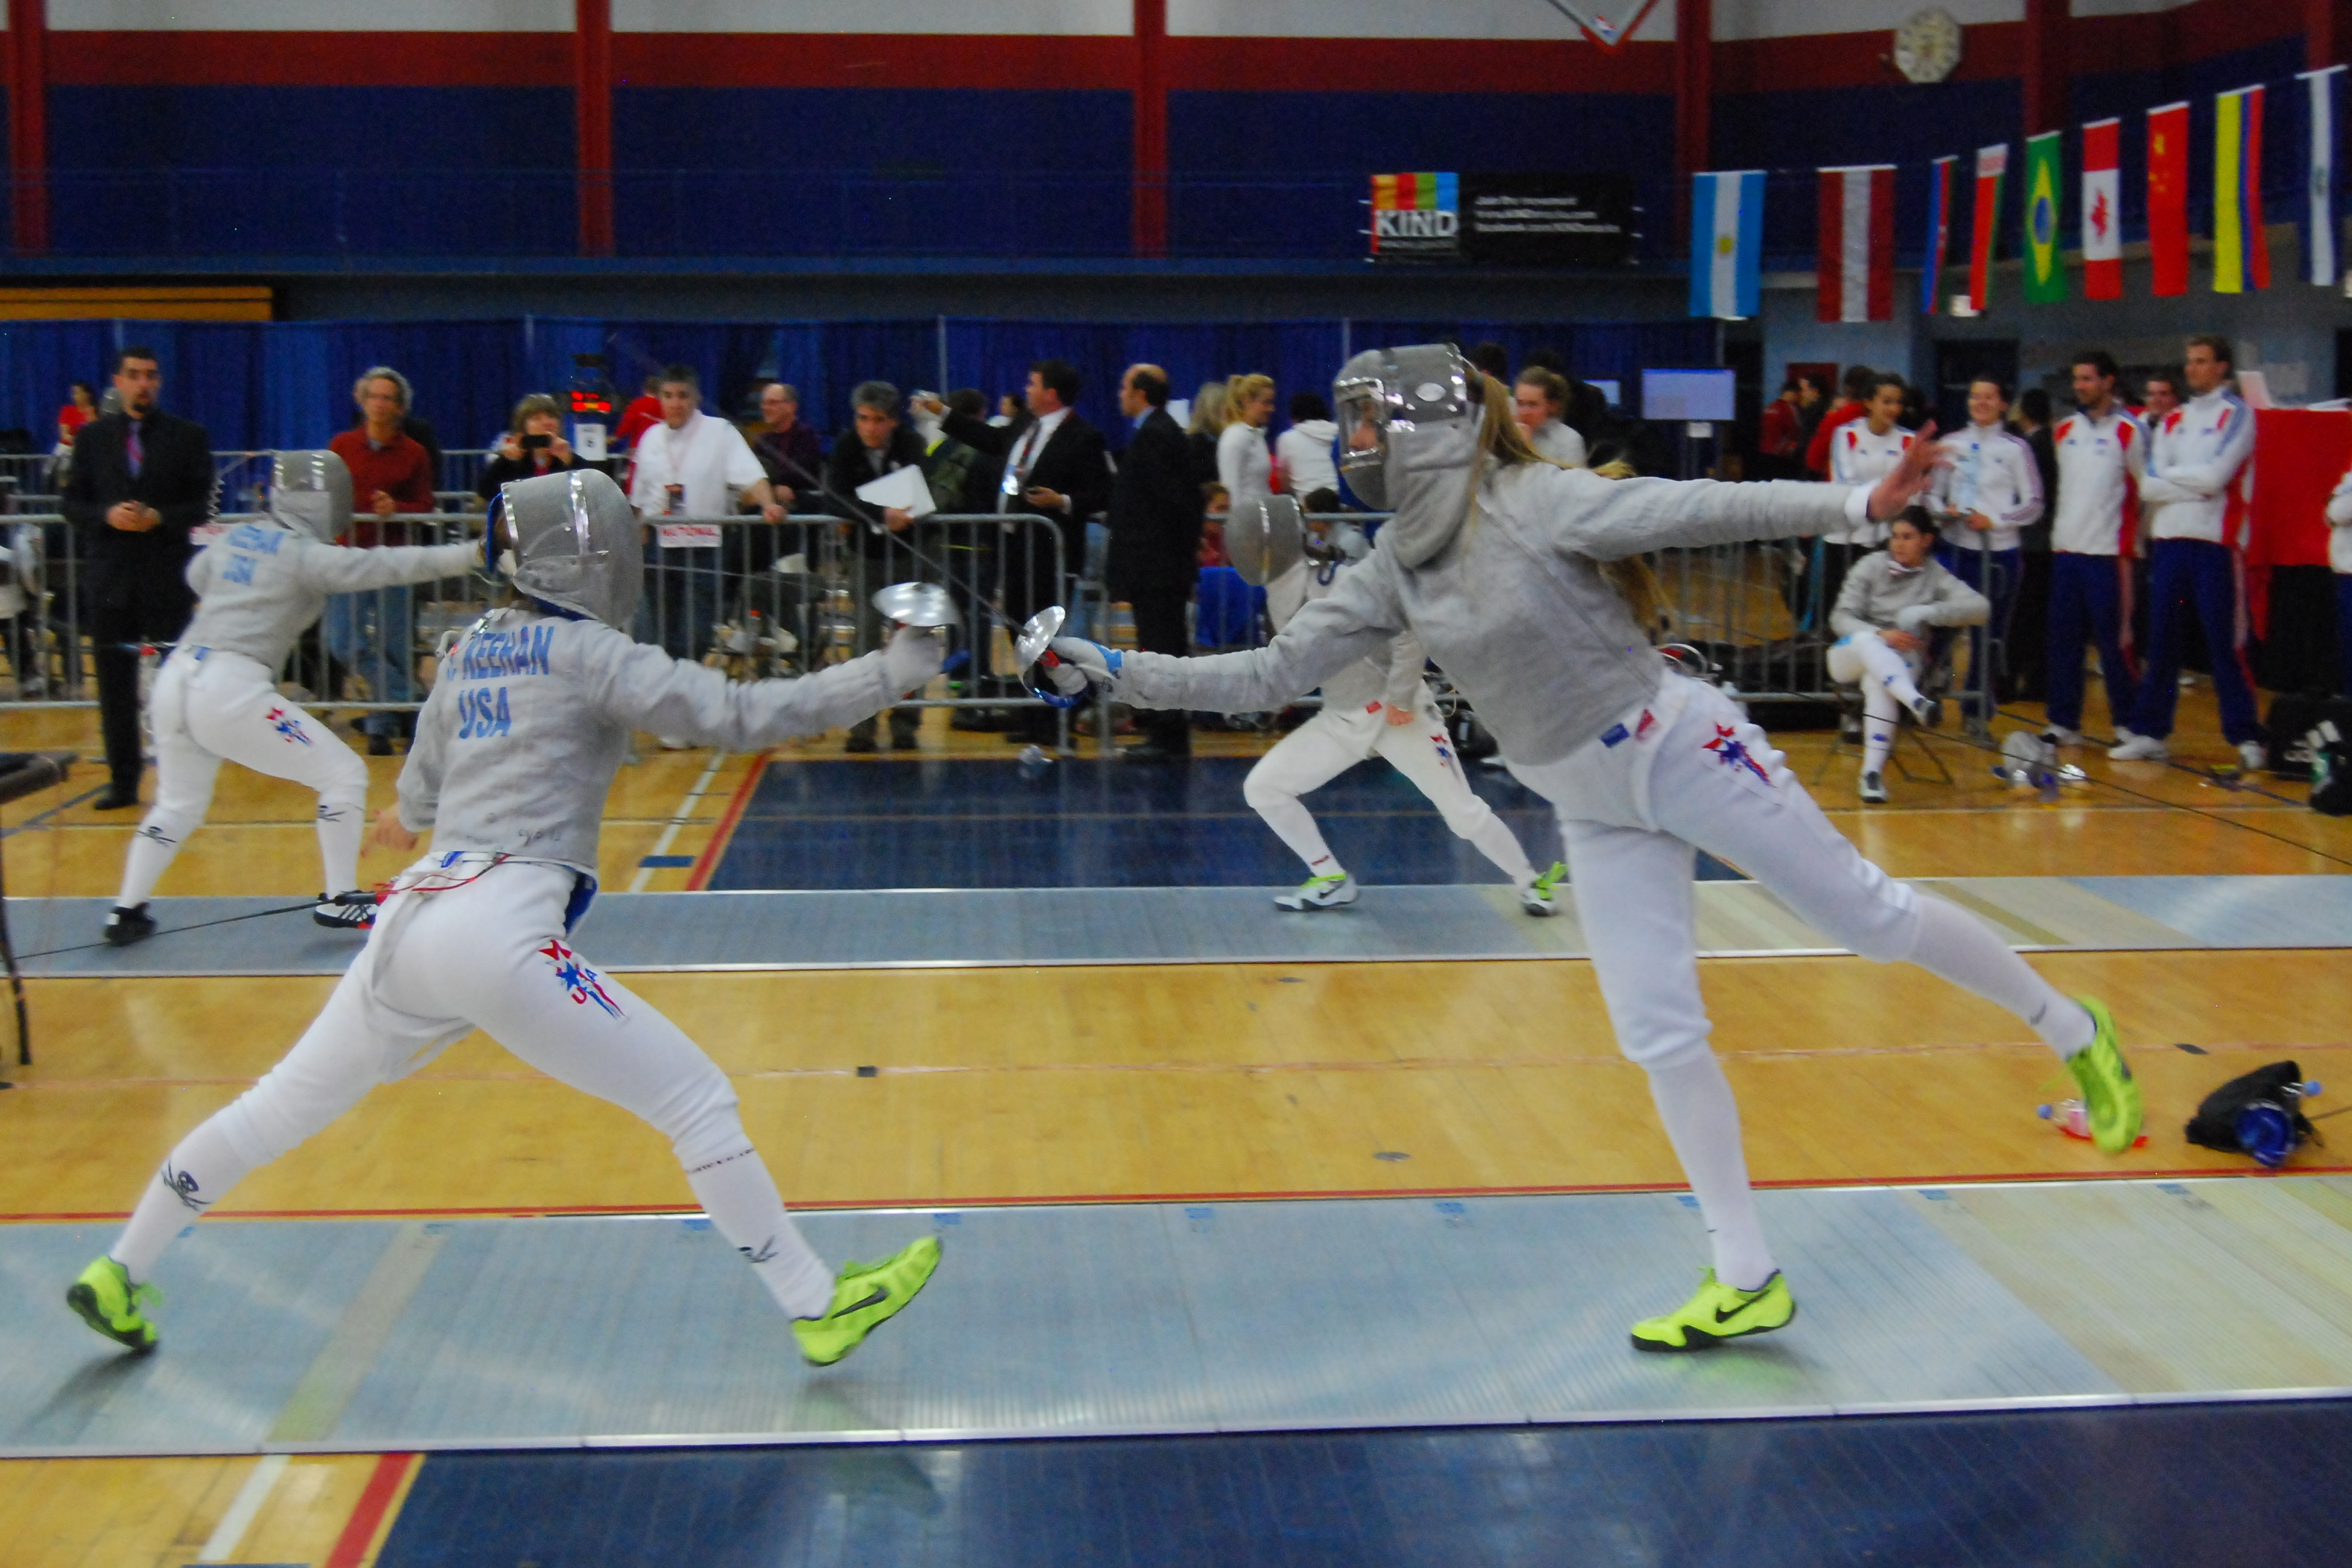 Twenty U S  Fencers Advance to Second Day of Absolute